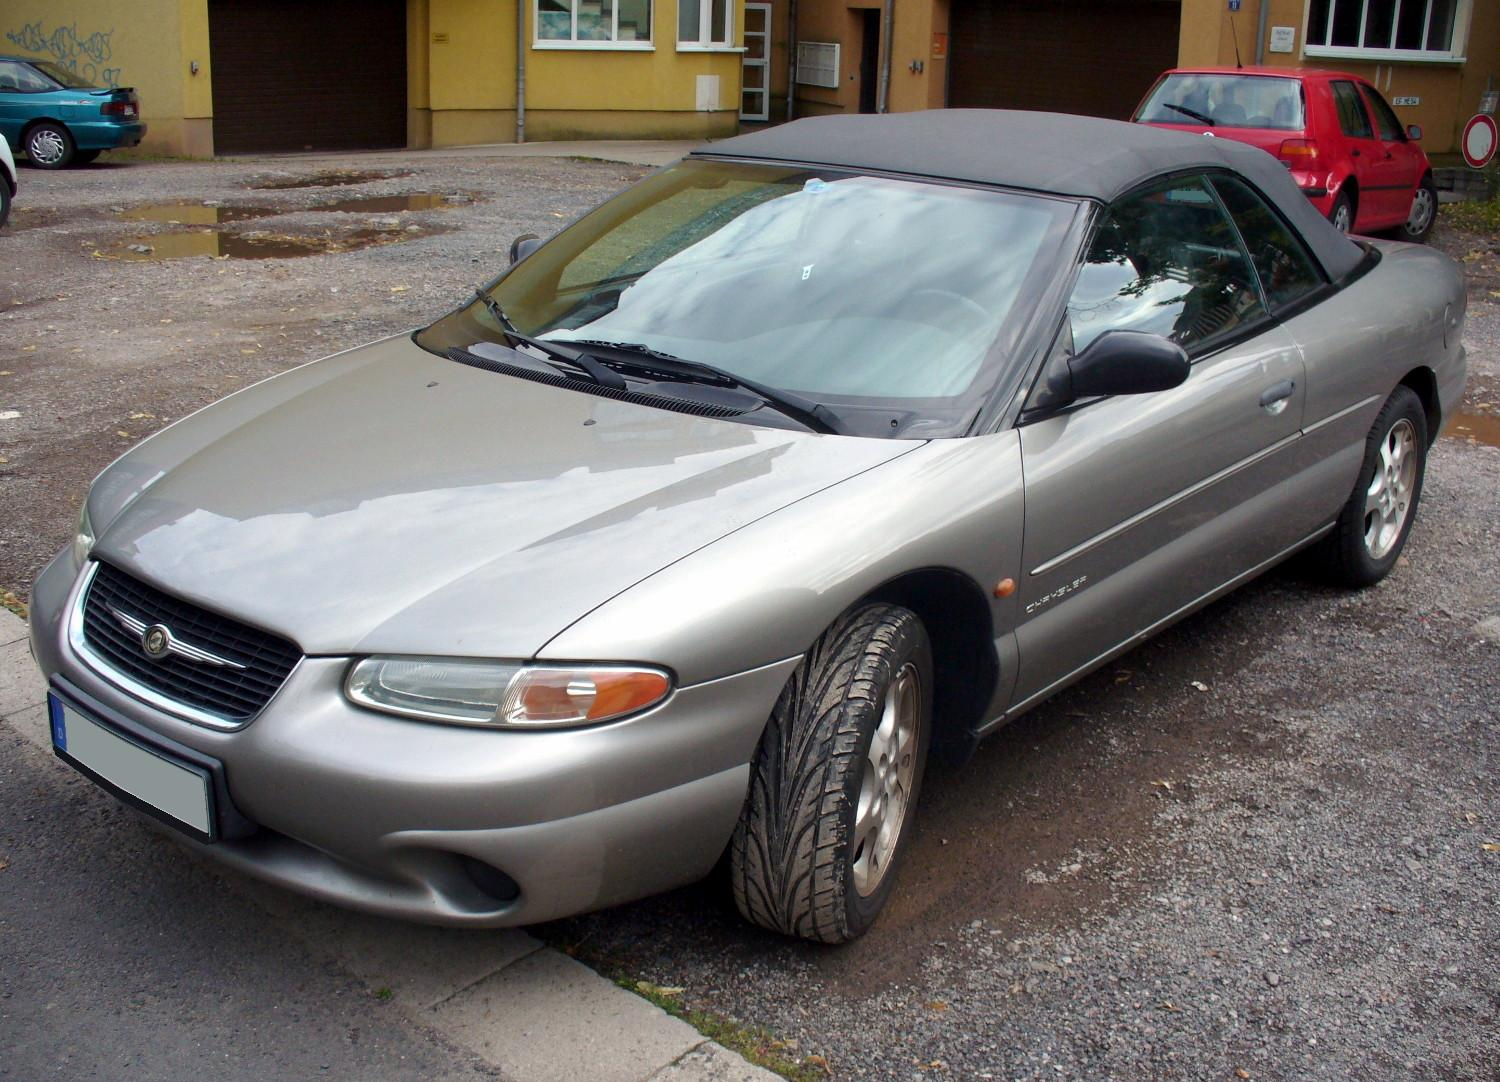 Chrysler stratus photo - 1